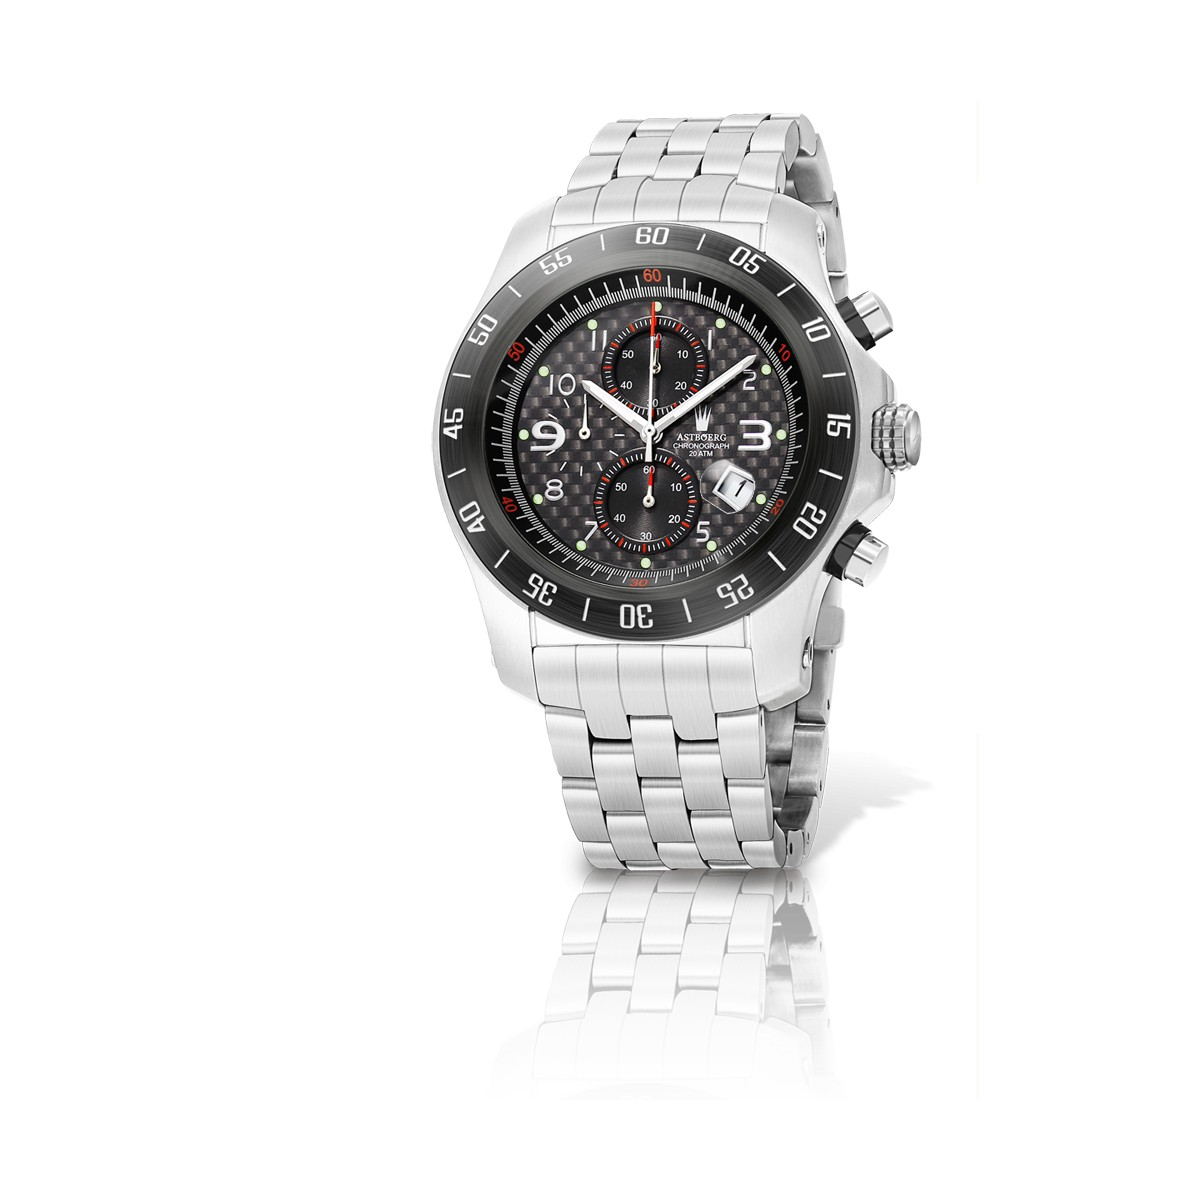 Astboerg Avantgarde Carbon Fiber Herrenuhr AT1022C Chronograph